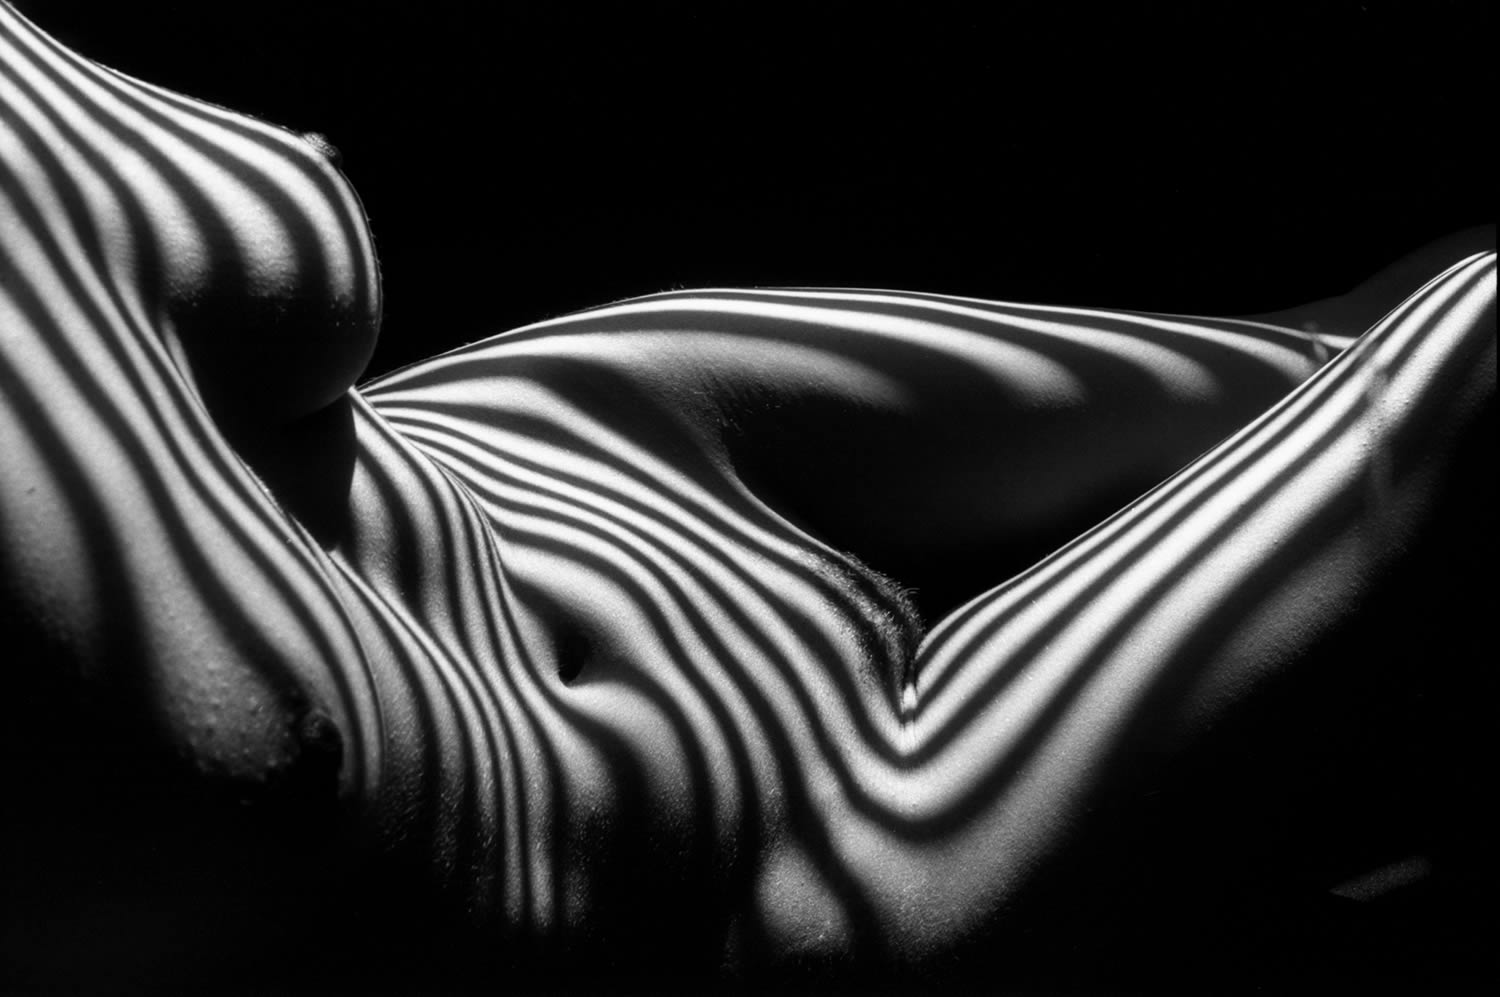 body at side, zebra striped nude, photography by lucien clergue